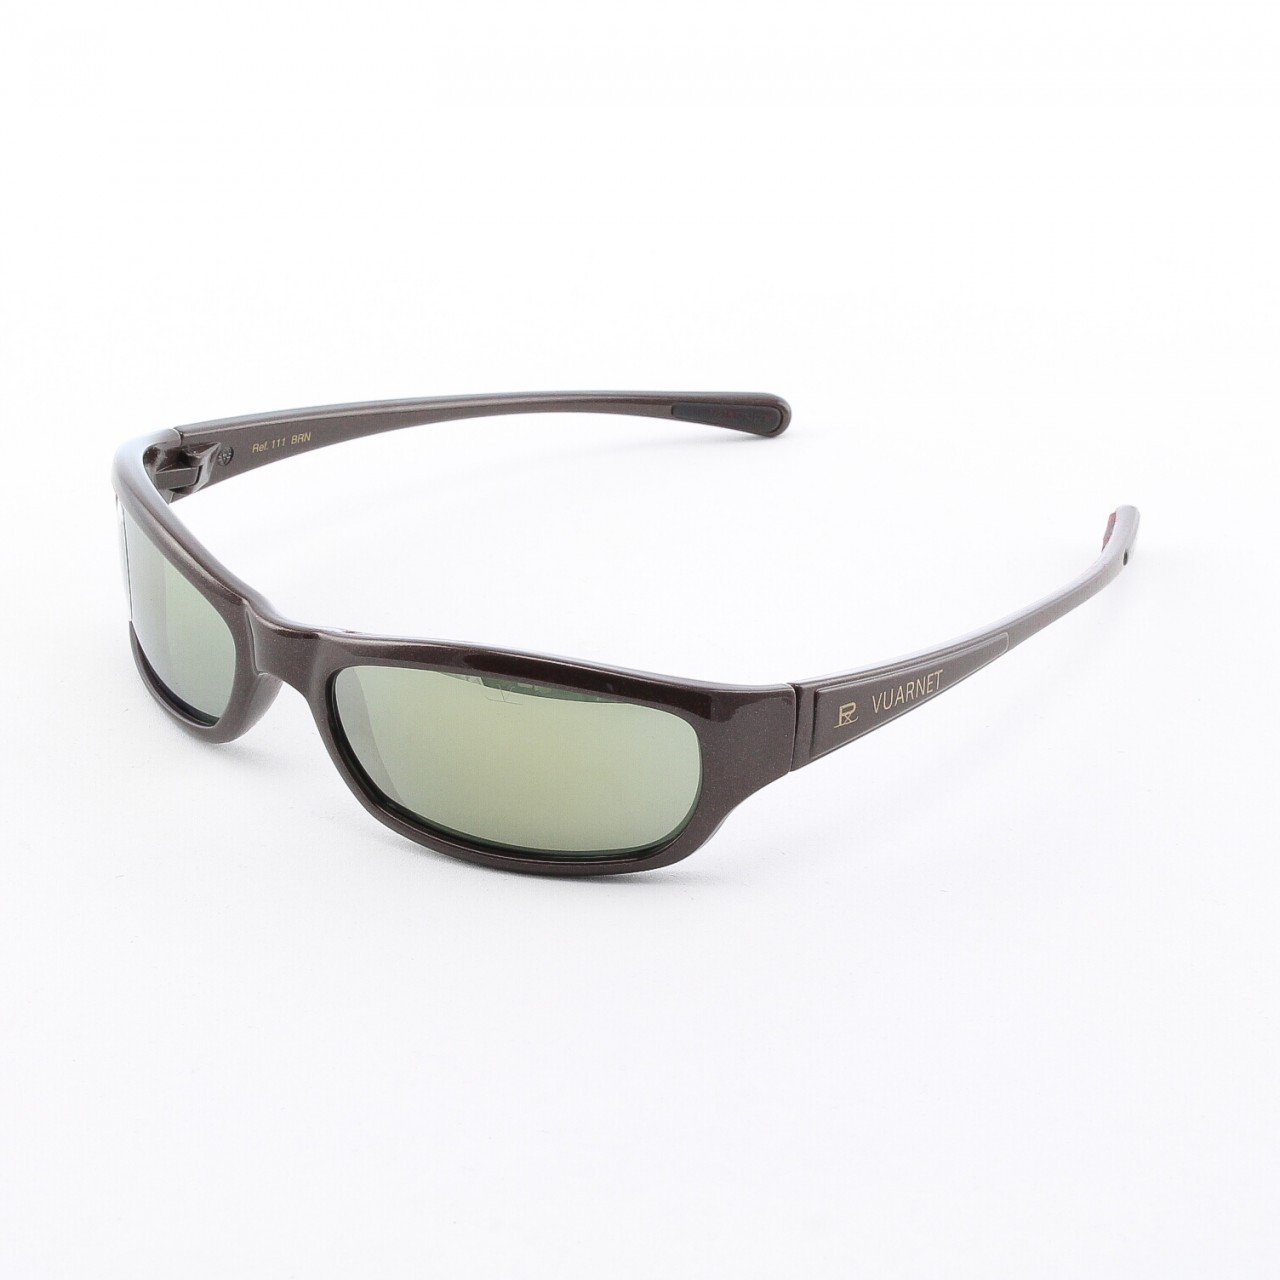 Vuarnet 111 BRNFB Uni Sunglasses Col. Brown with Grey Based PX3000 Lenses